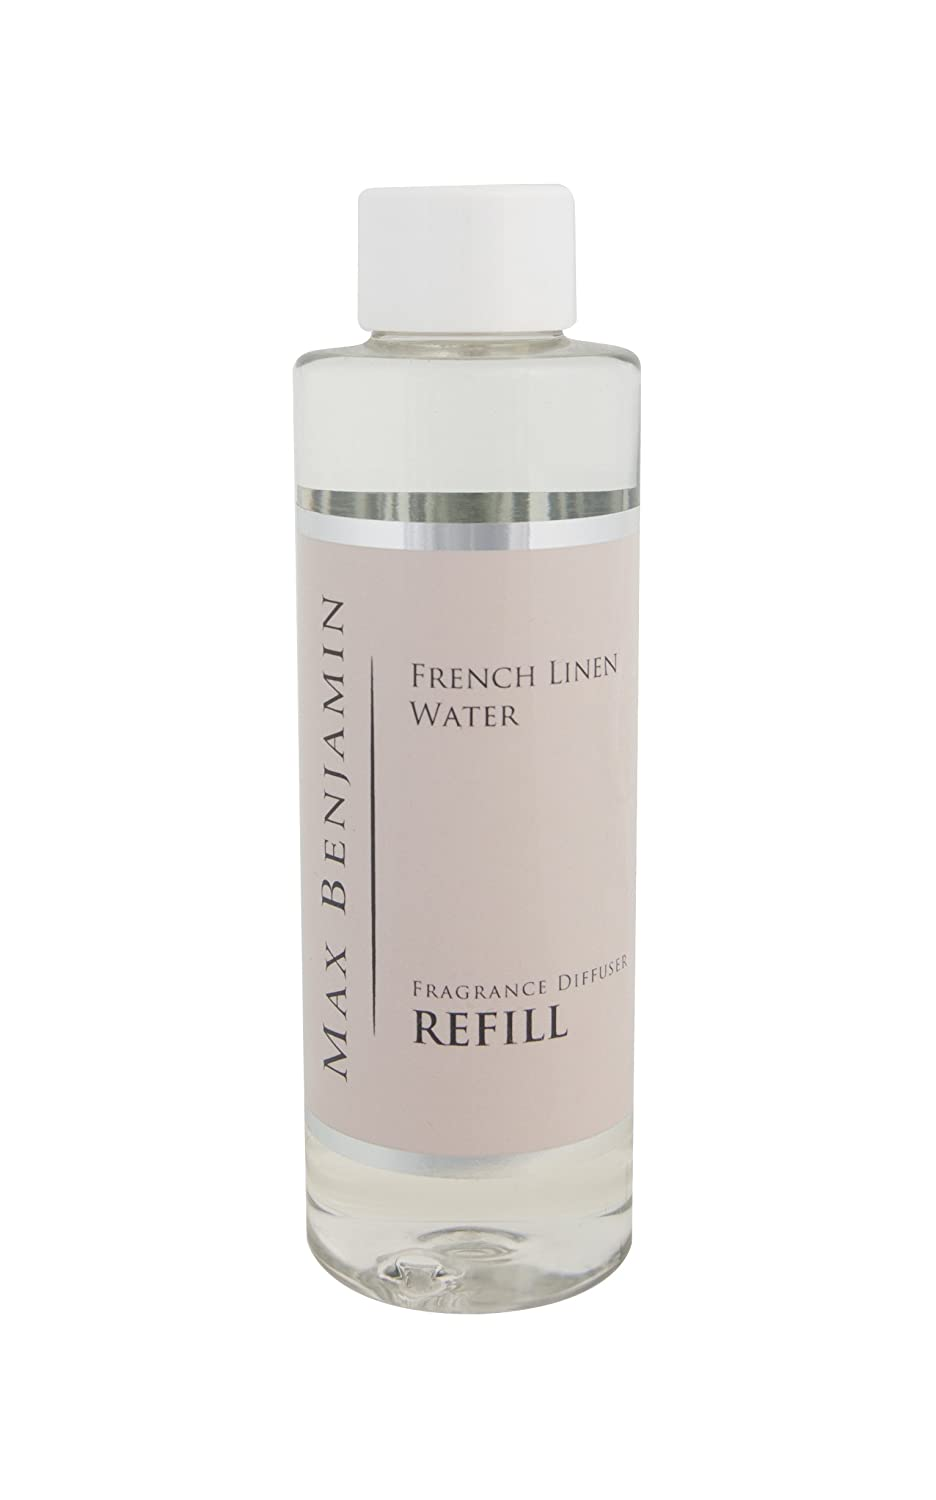 Max Benjamin - Ricarica per profumatore per Ambienti, fragranza: French Linen Water MB-DR9 MB-DR9_Clear Bottle-150ml